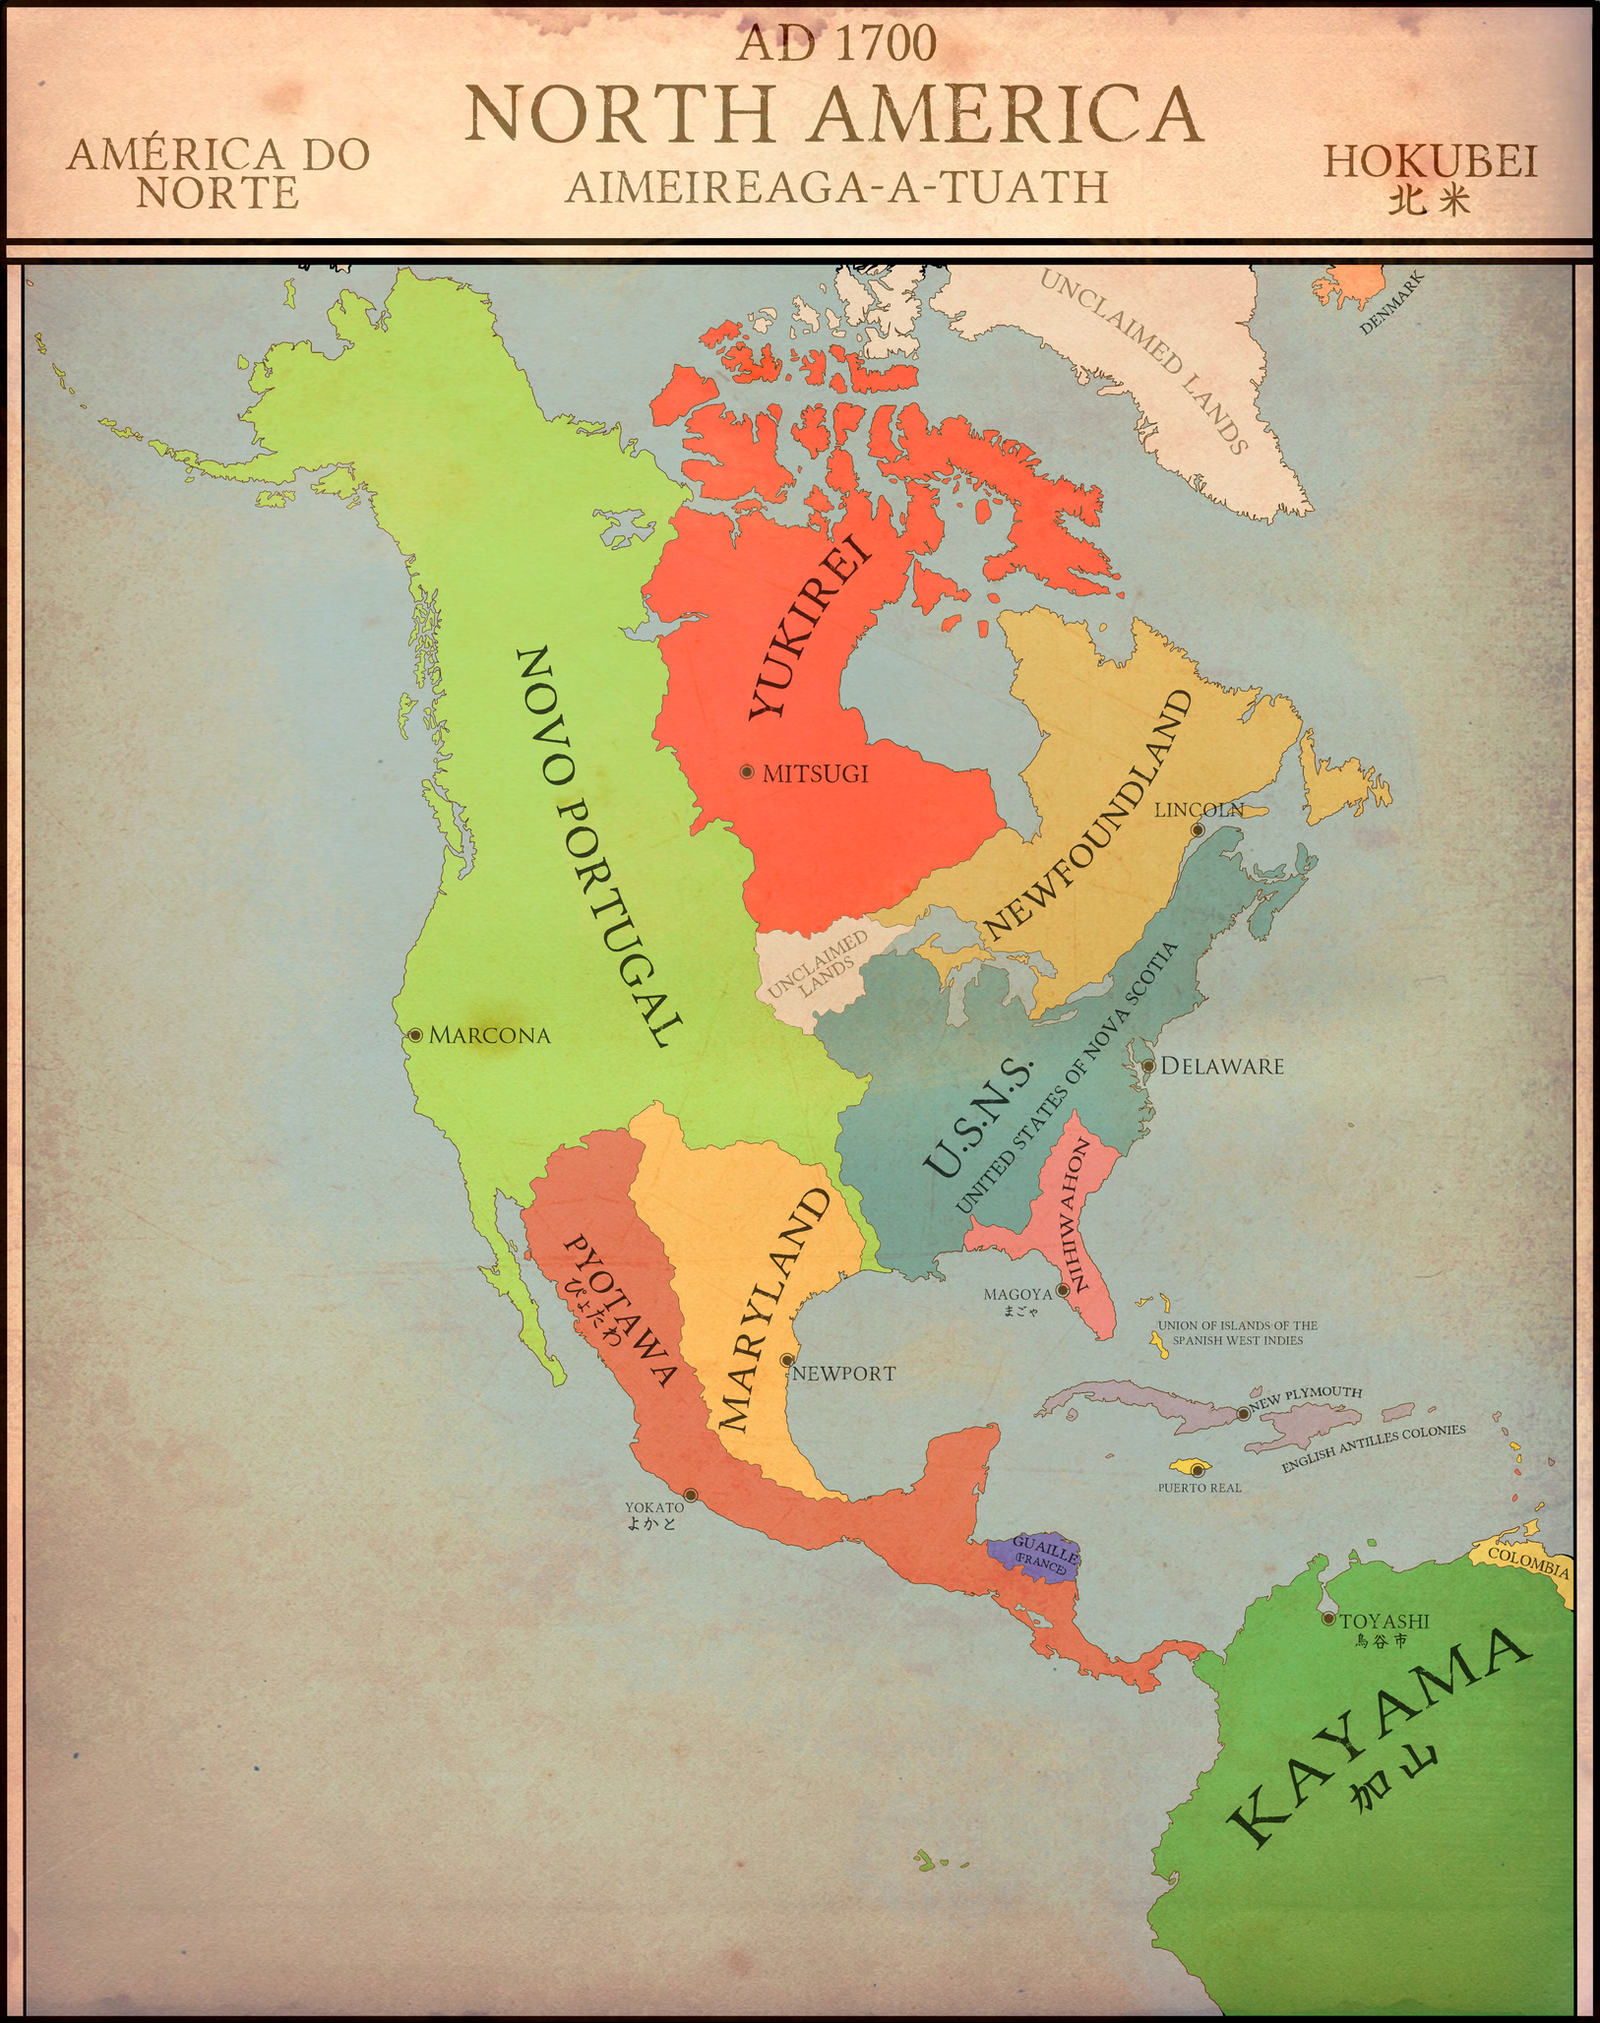 North America   EUIV Japan Campaign By Fridip On DeviantArt - Map of north america 1700